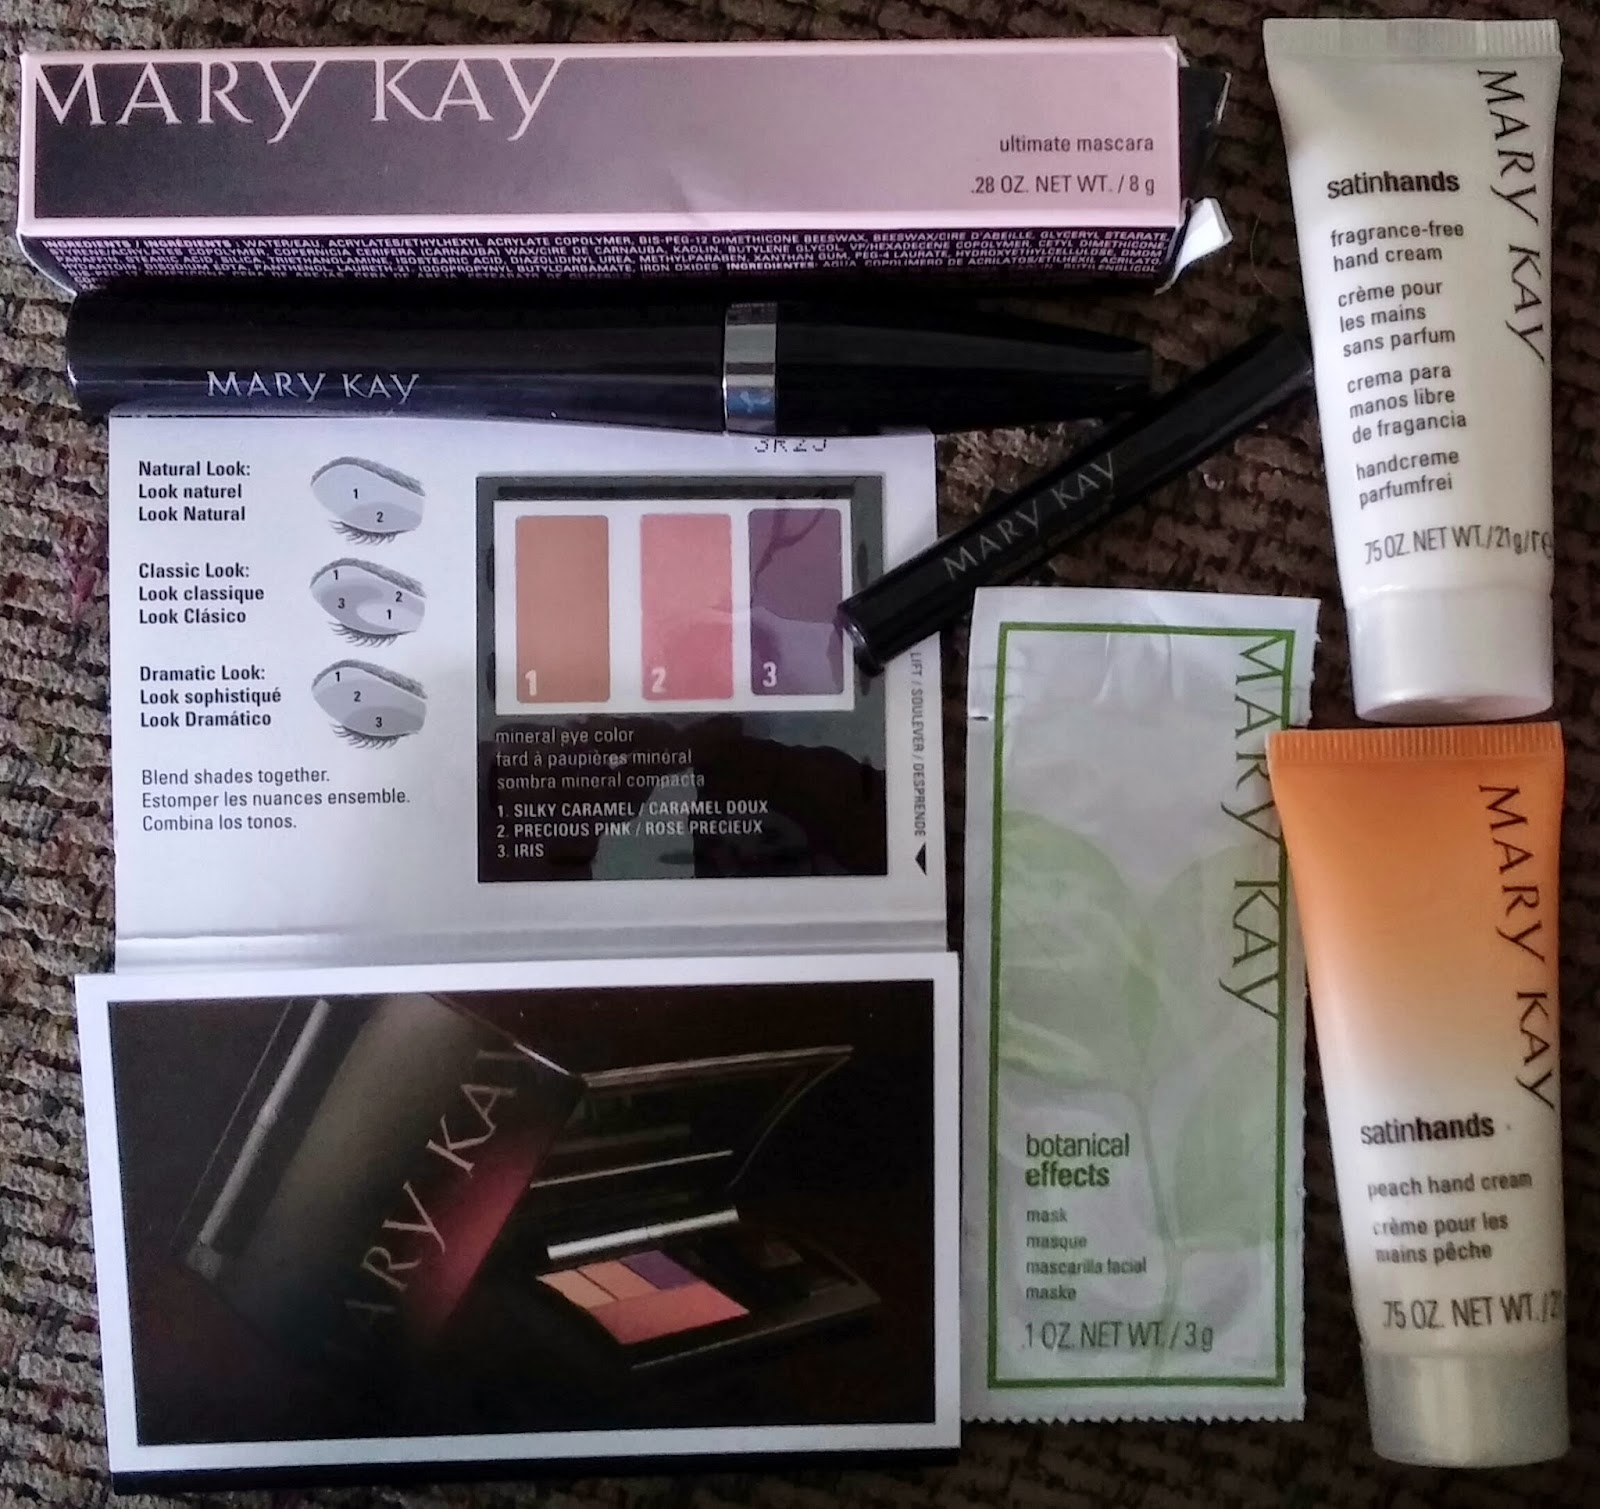 I Review Stuff: Mary Kay Swag Bag